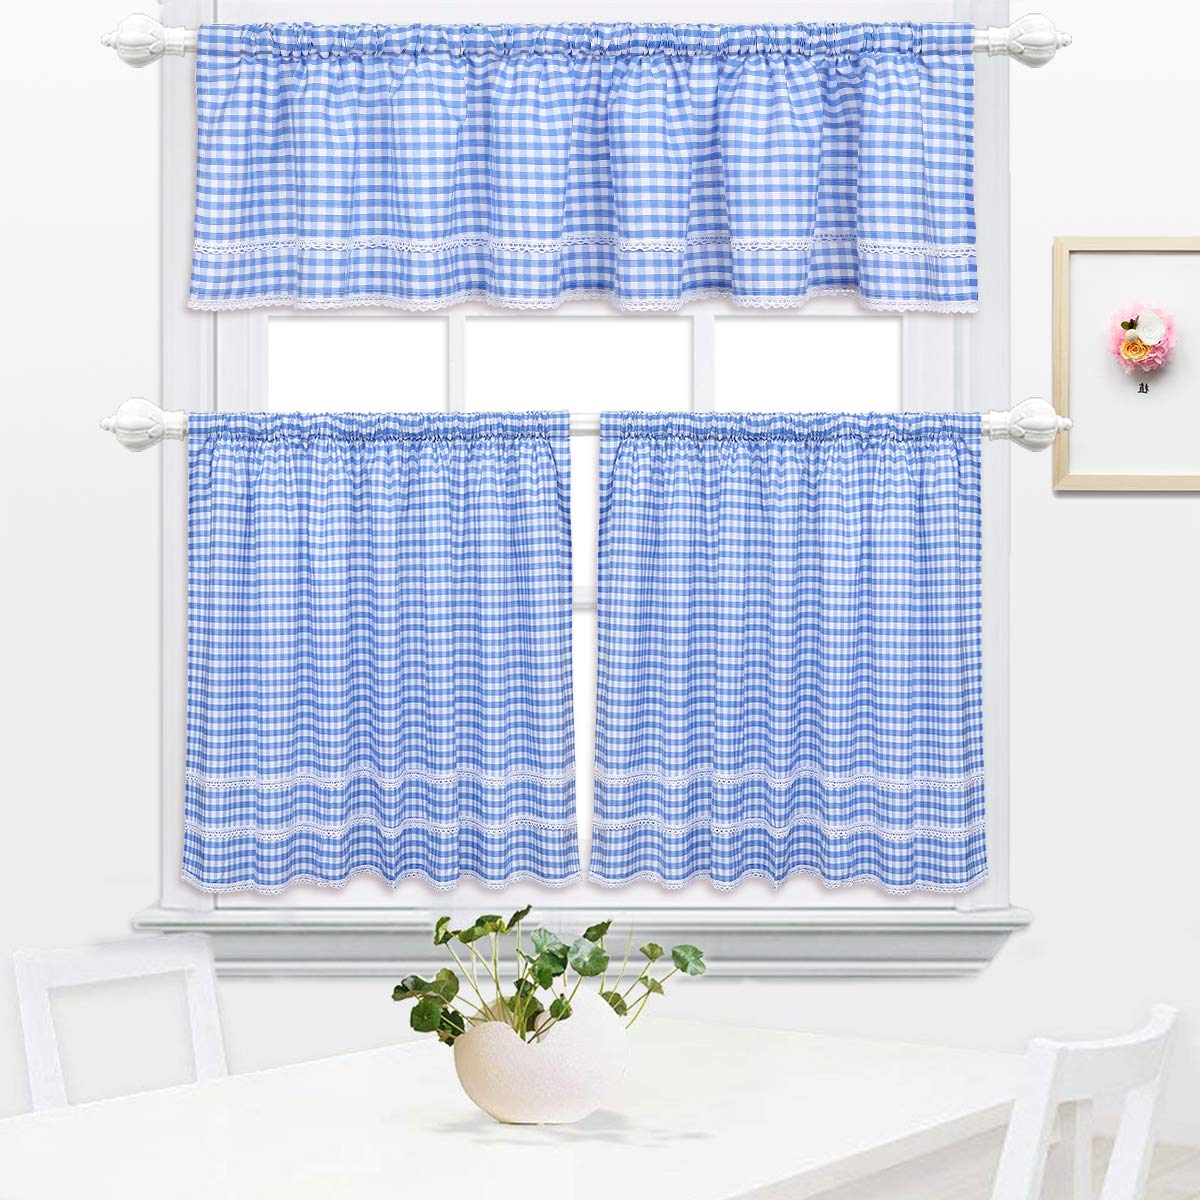 Best And Newest Kitchen Window Tier Sets Inside Dokot Plaid Country Window Cafe Curtain Tier And Valance Sets With Lace Crochet Border For Home Kitchen 3 Pieces Red (blue) (View 5 of 20)